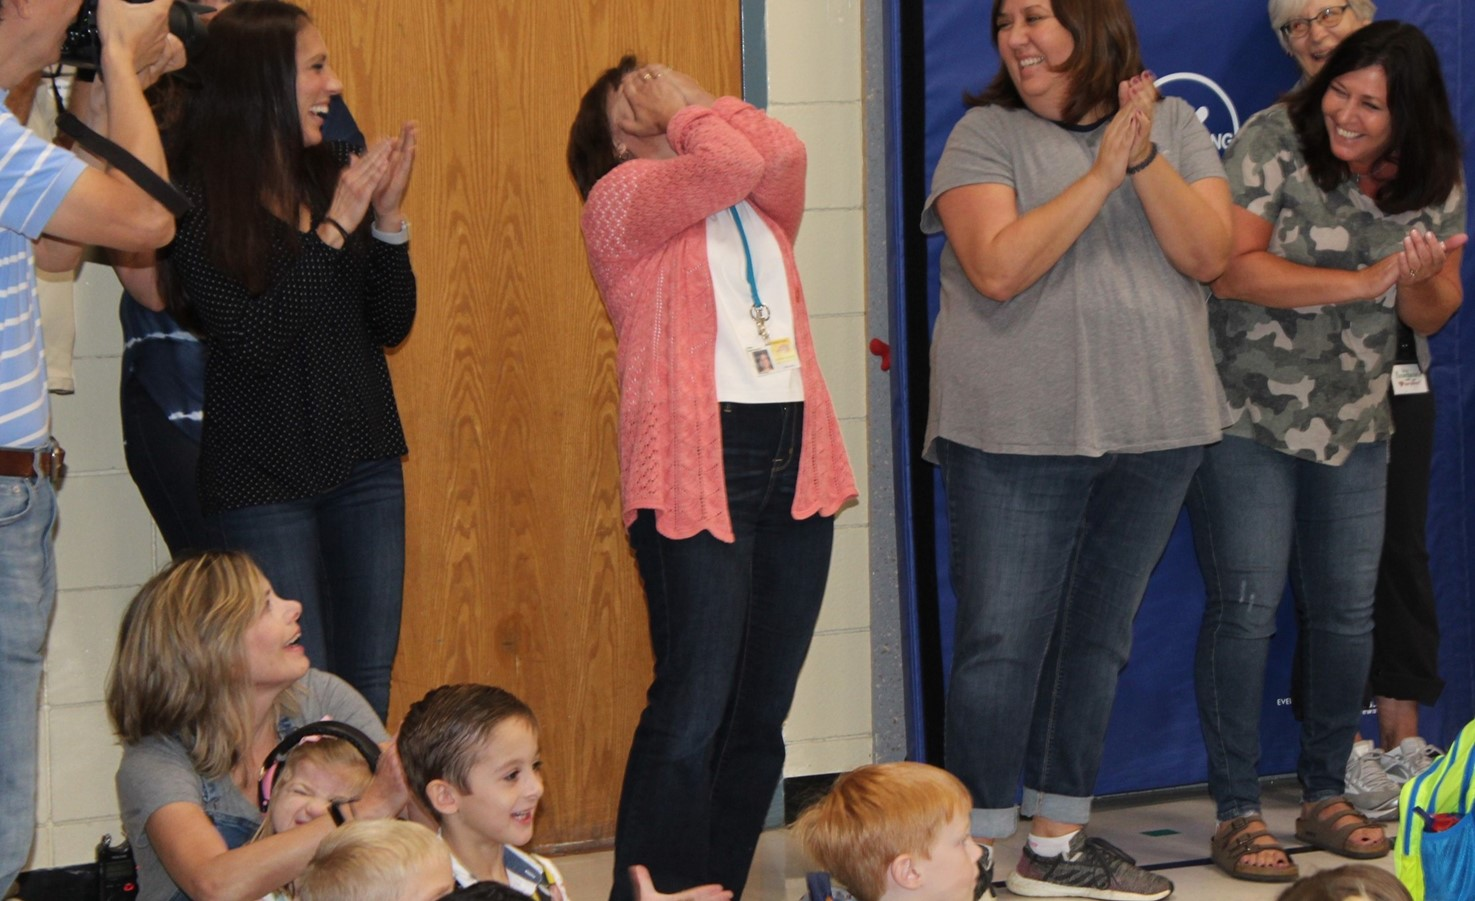 Teacher's surprised response to her being awarded State-Wide Recognition